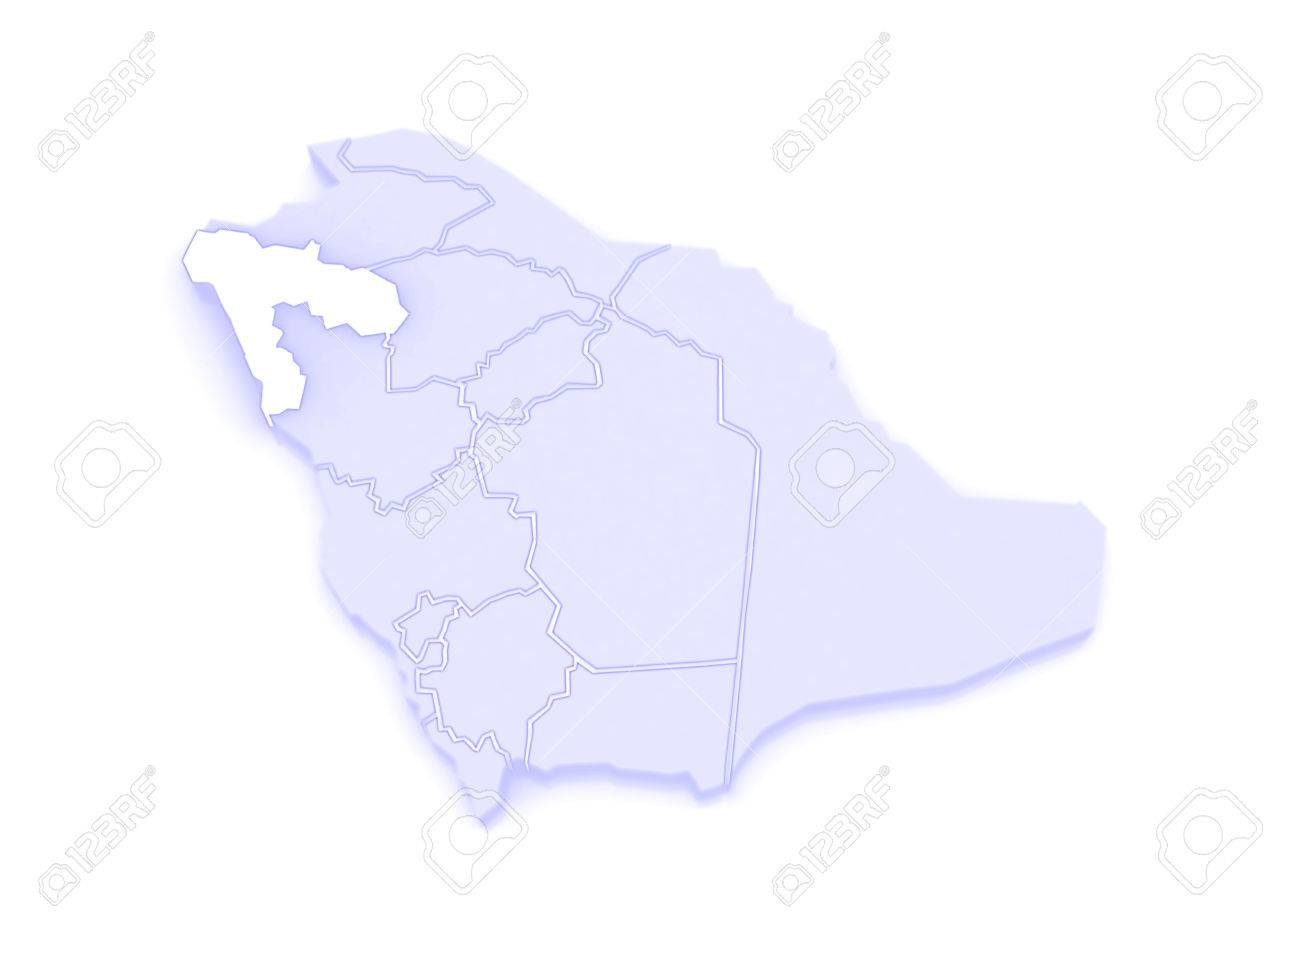 Map Of Tabuk Saudi Arabia 3d Stock Photo Picture And Royalty Free